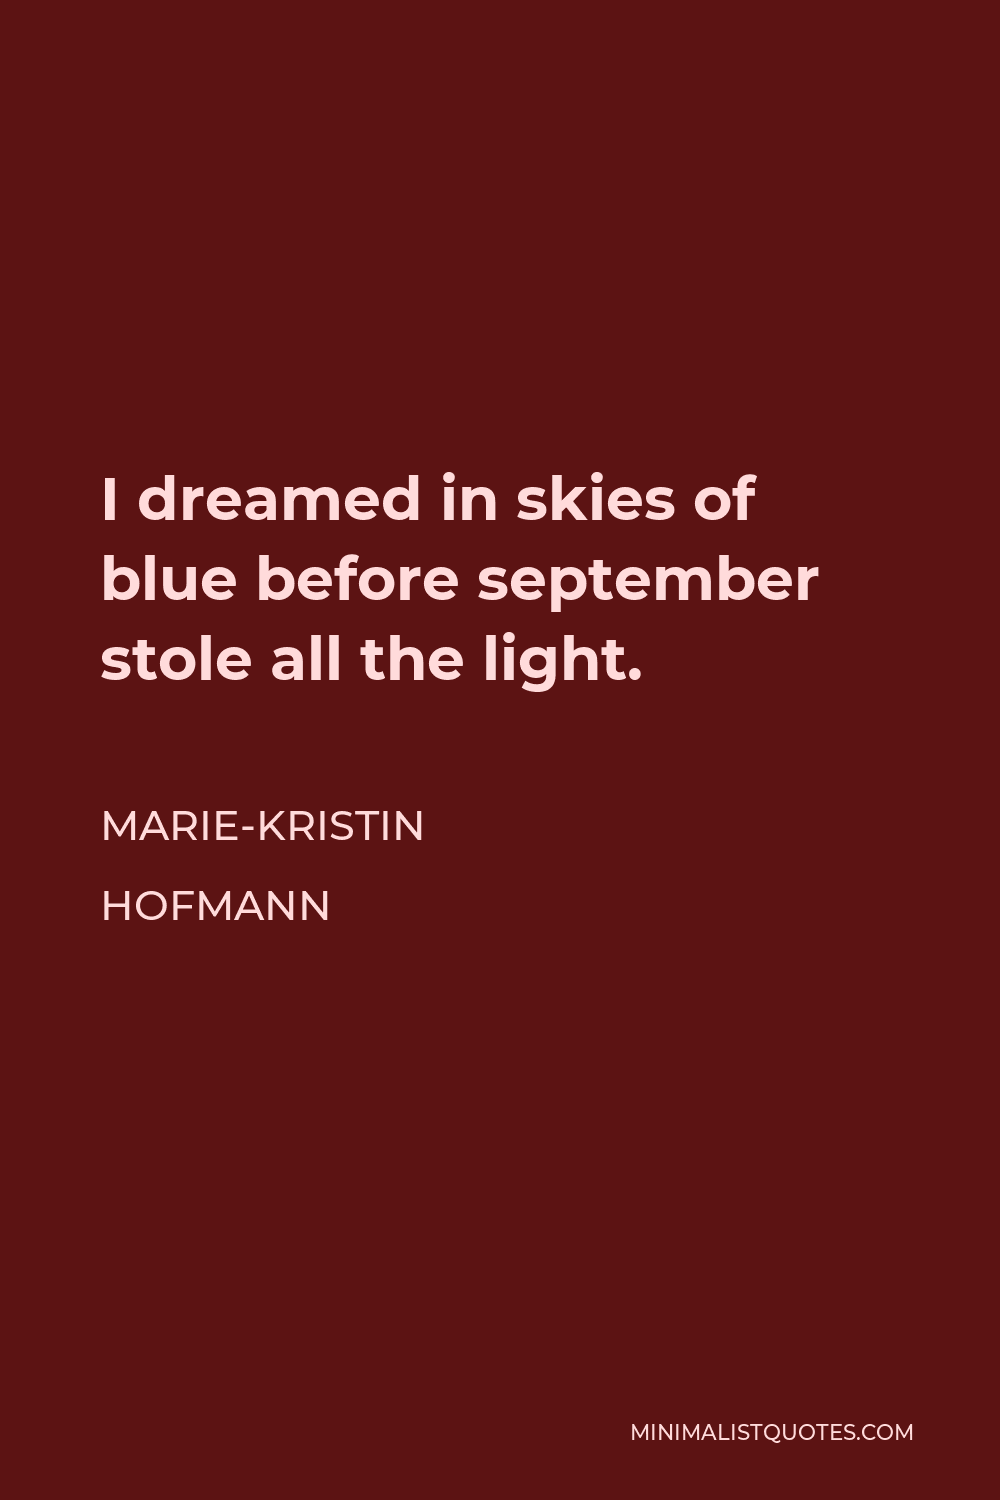 Marie-Kristin Hofmann Quote - I dreamed in skies of blue before september stole all the light.